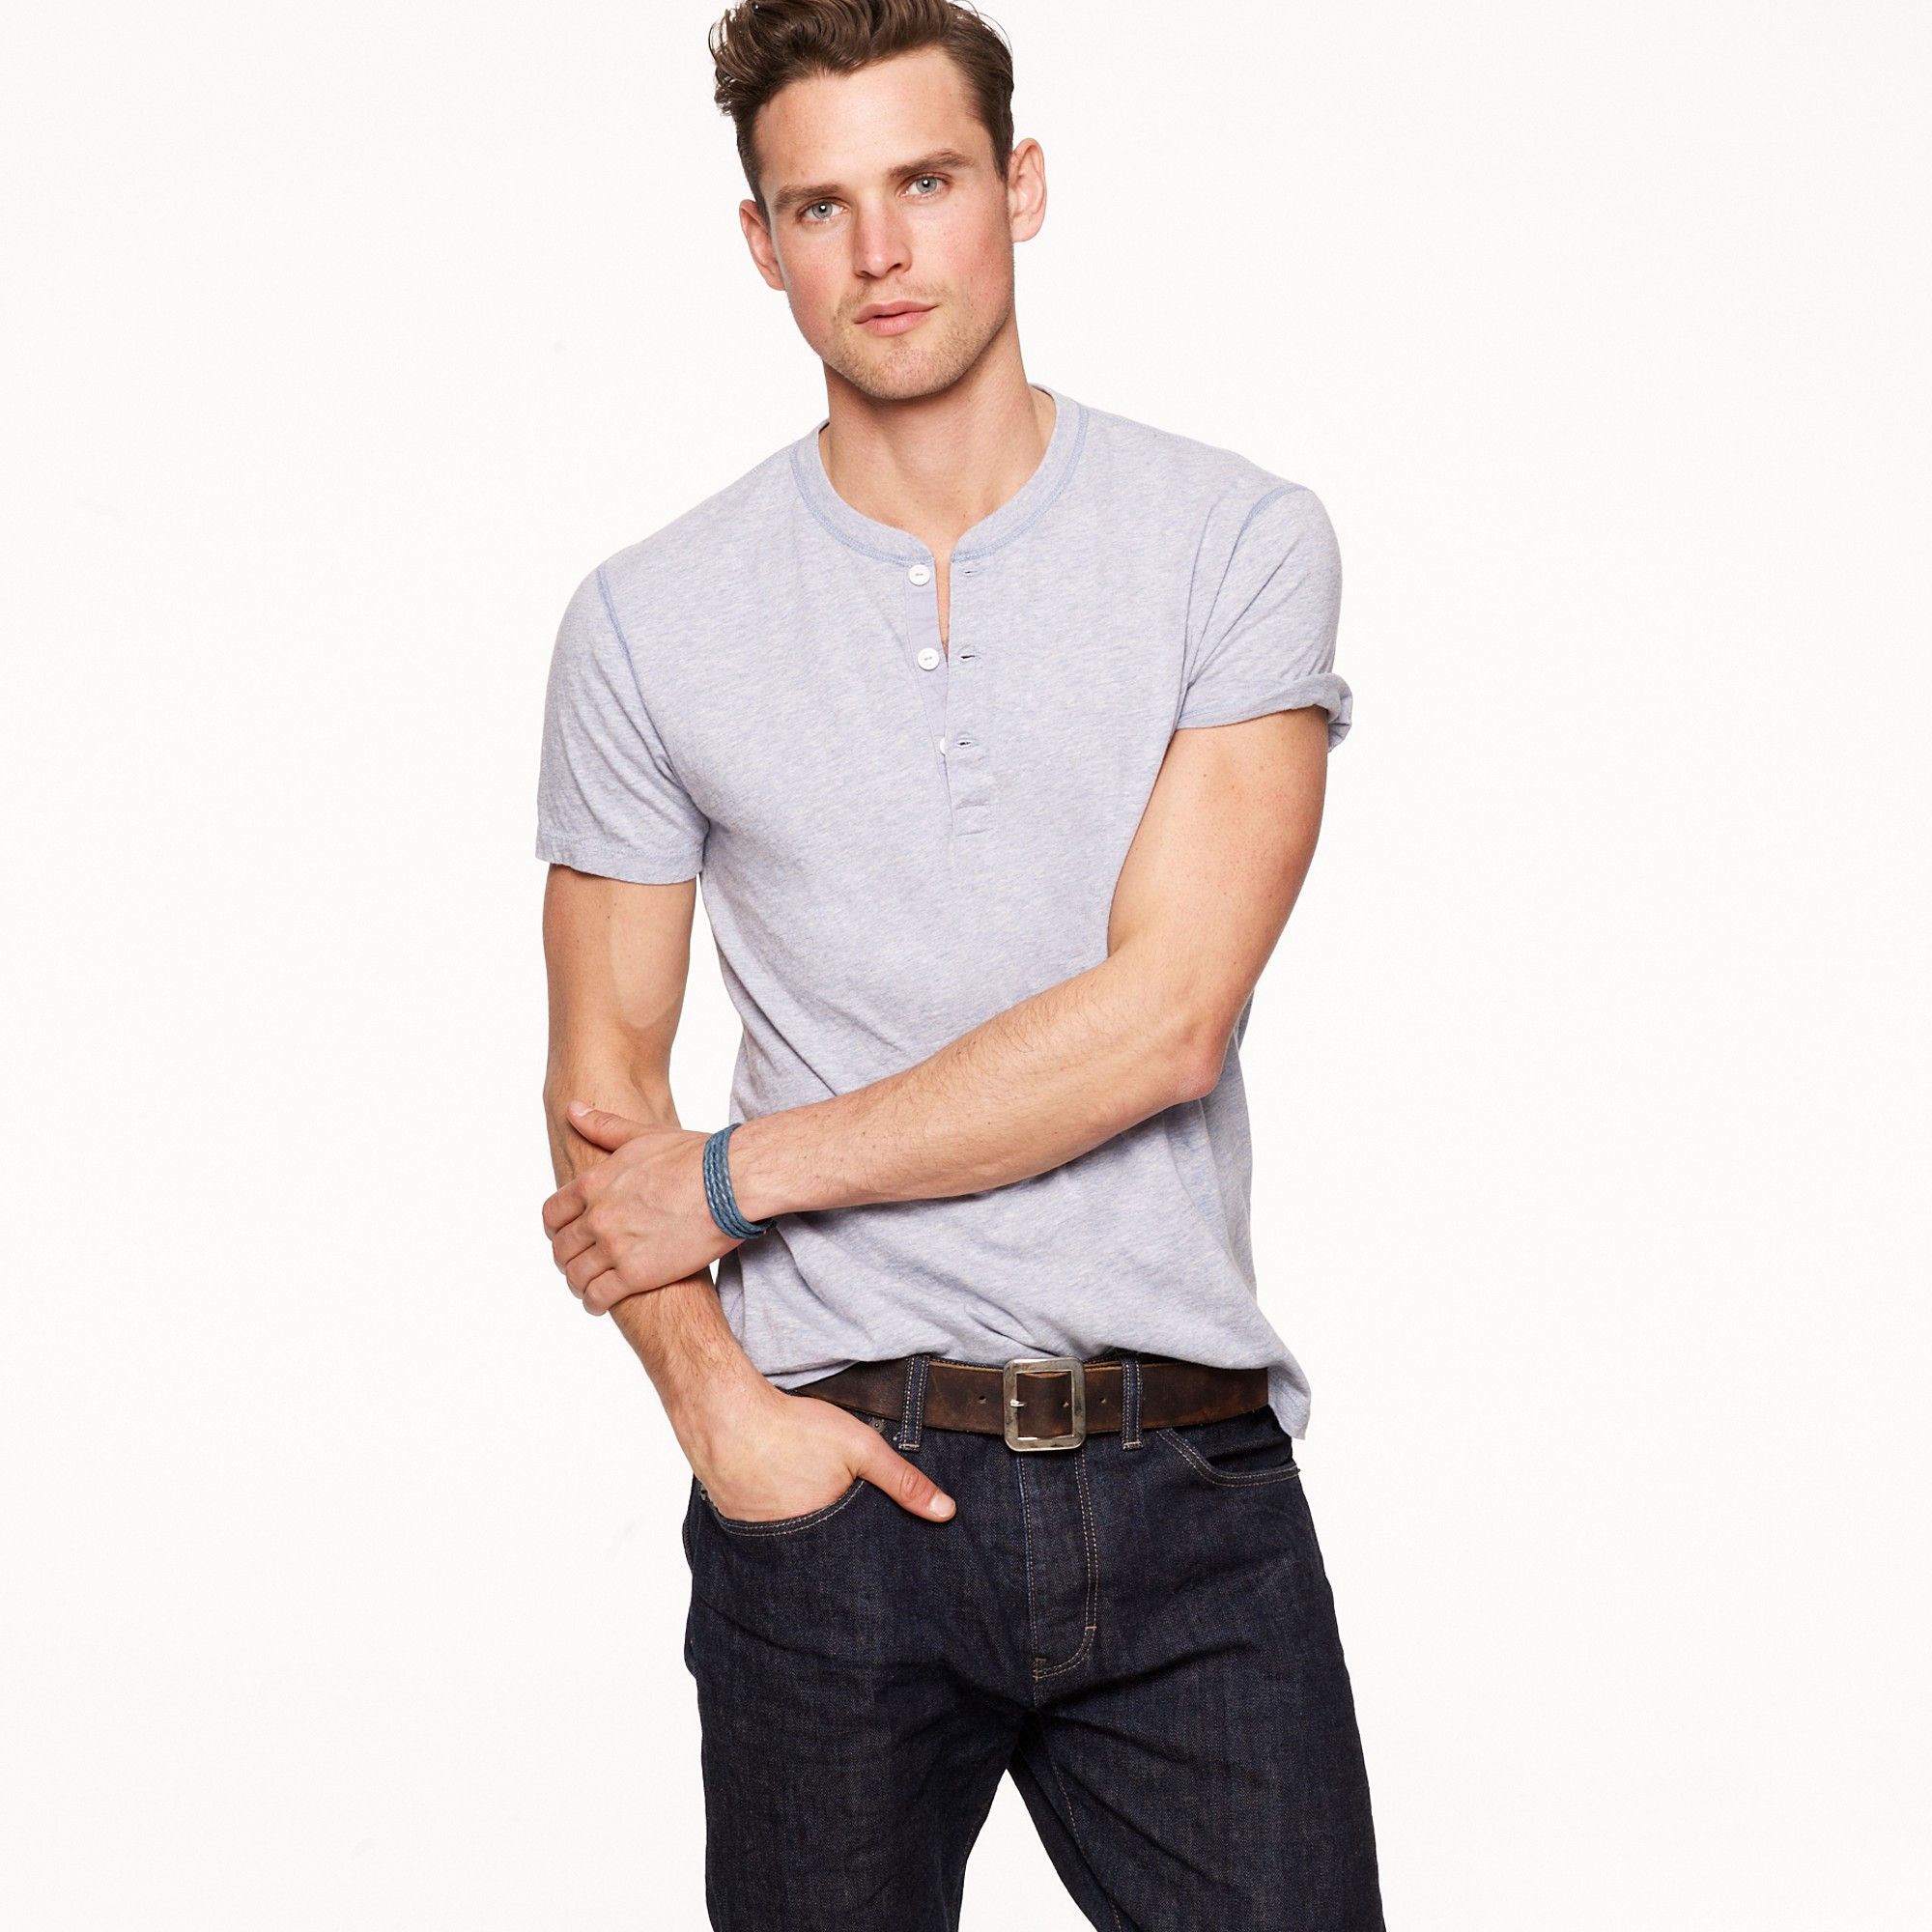 How To Wear Henley - Short Sleeve